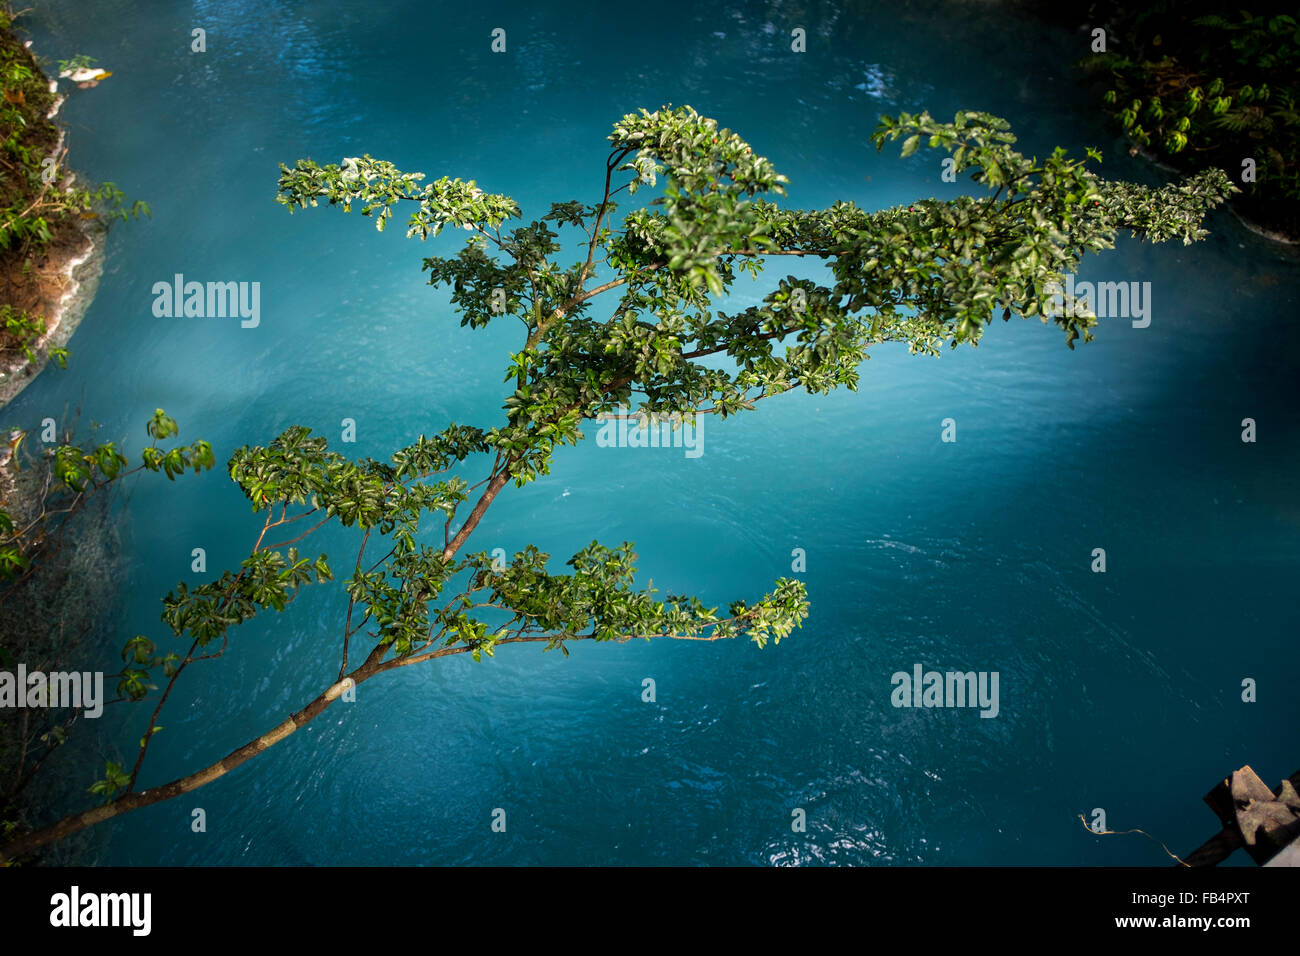 A branch of a tree bathed in sunlight hangs over the milky blue water of the Rio Celeste, Costa Rica. - Stock Image